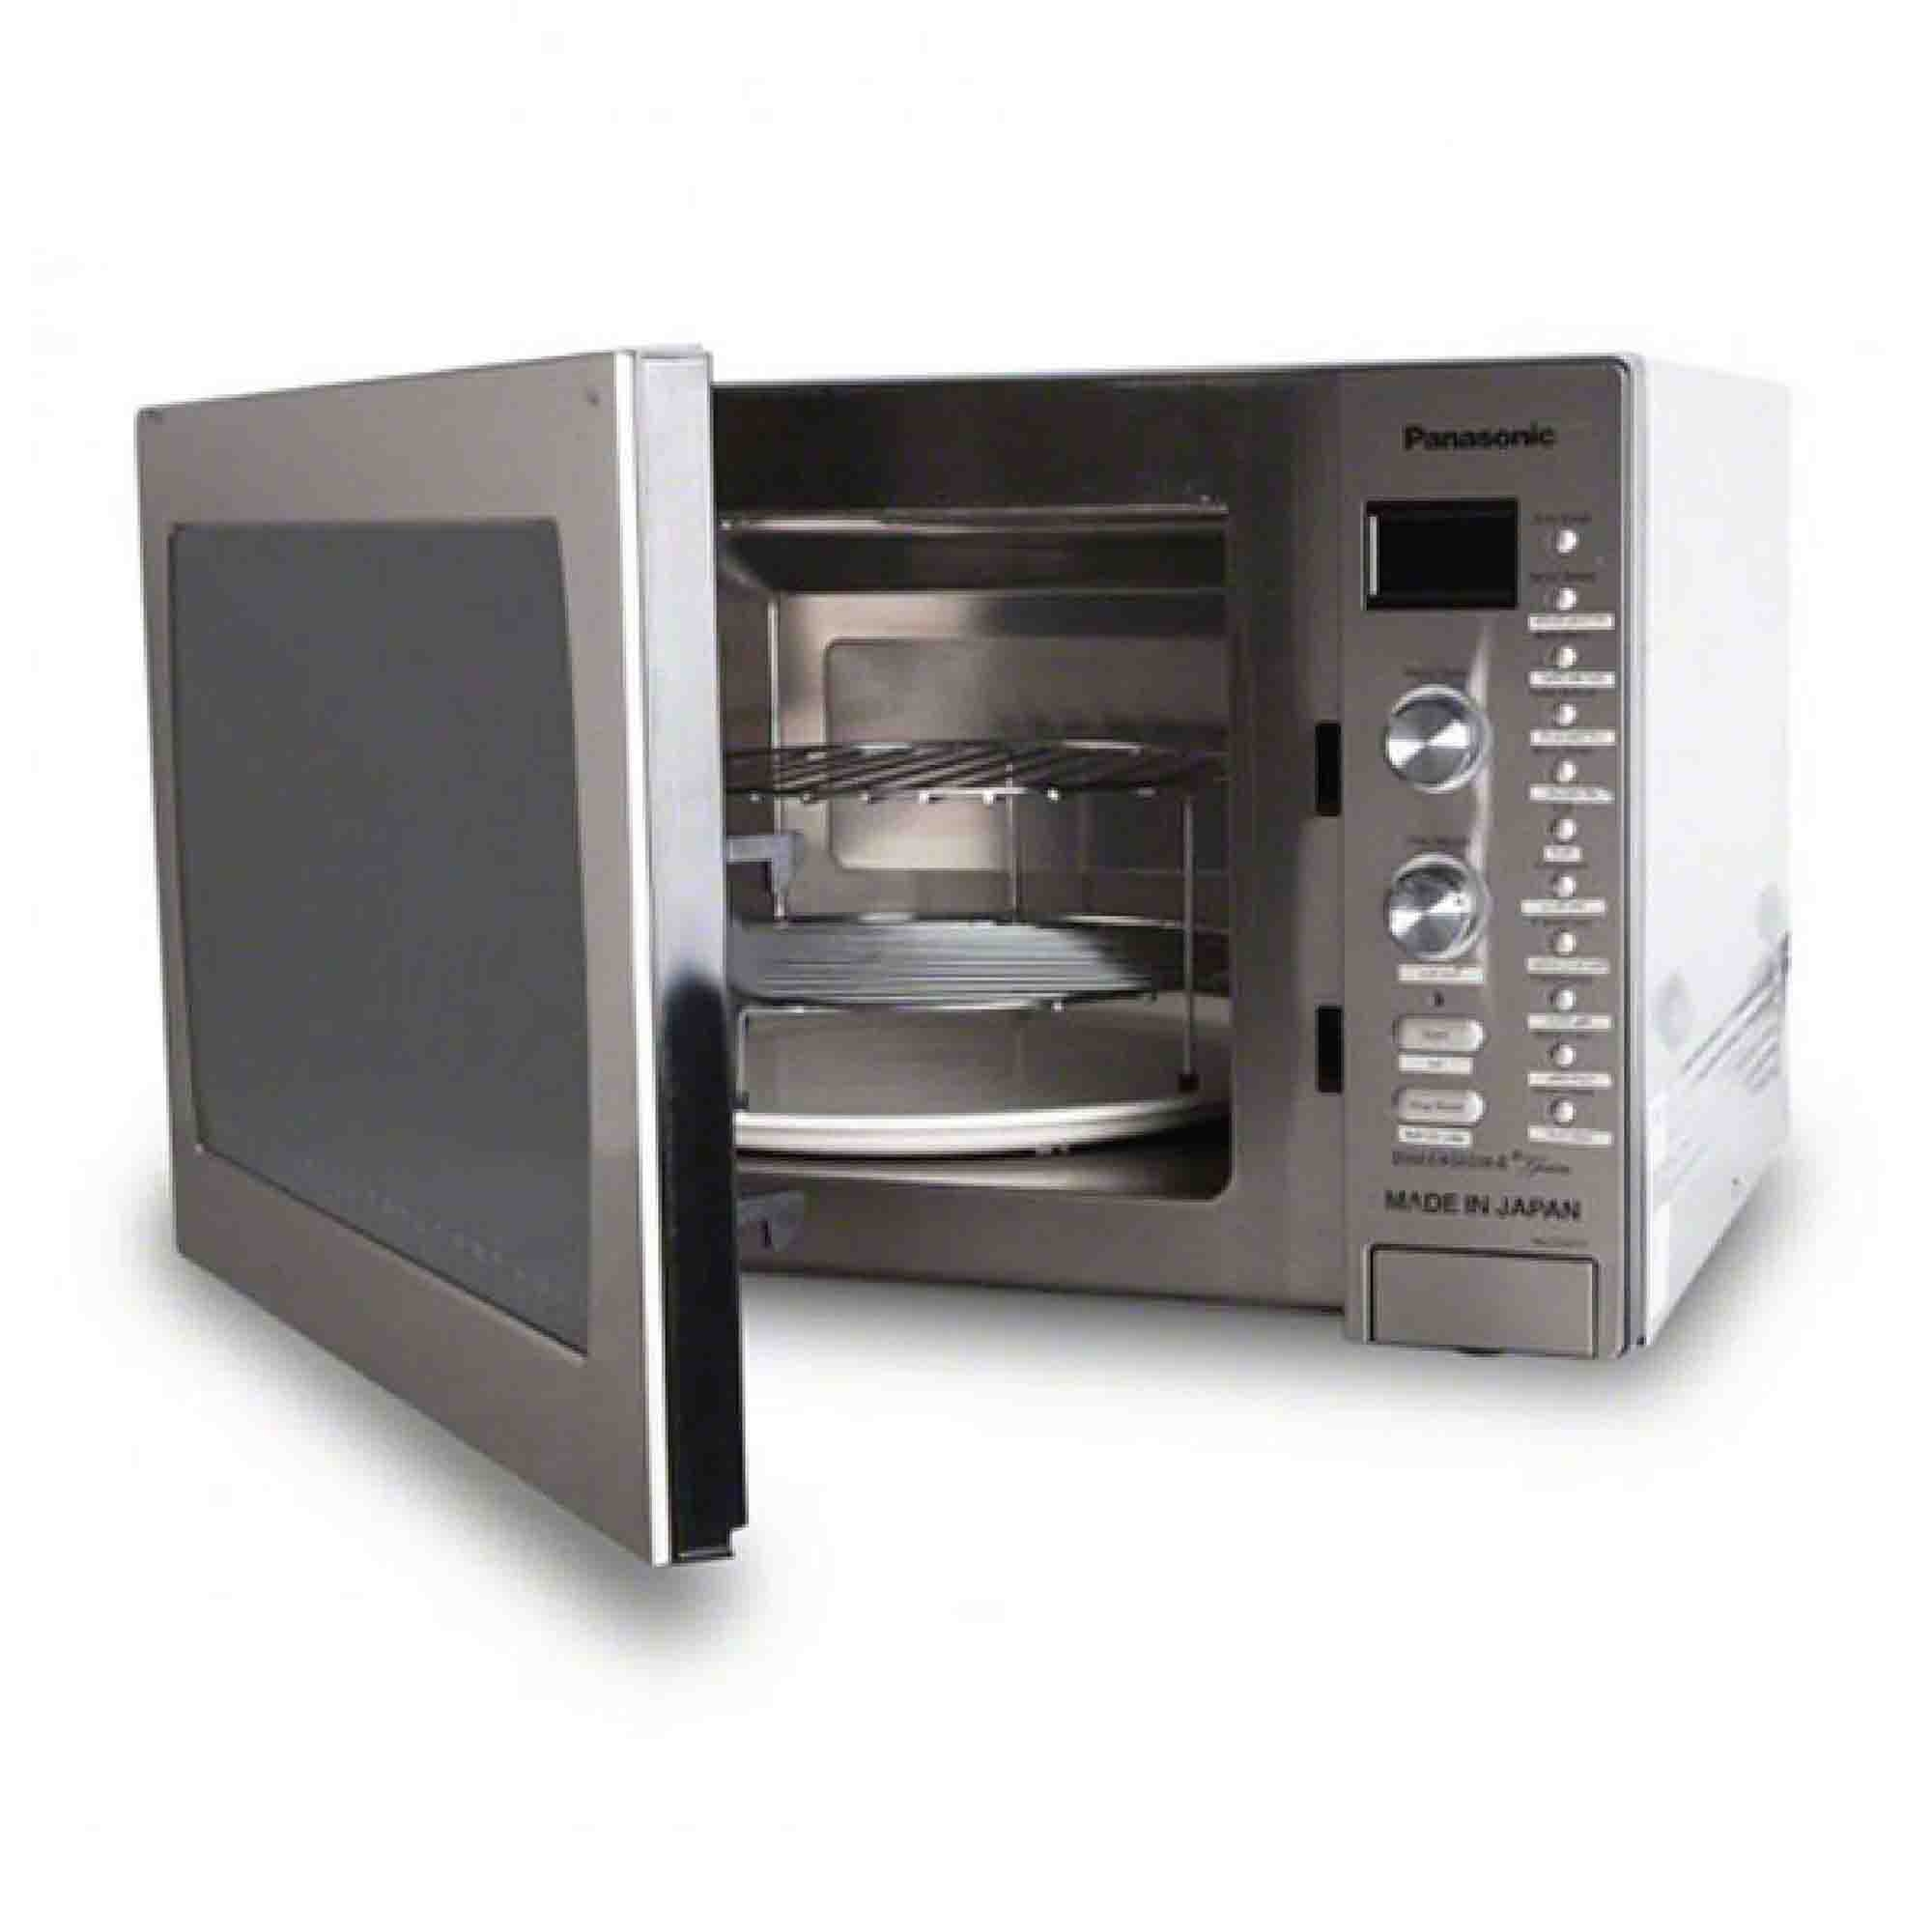 Panasonic Microwave Oven Nn Cd997s 42l Made In An